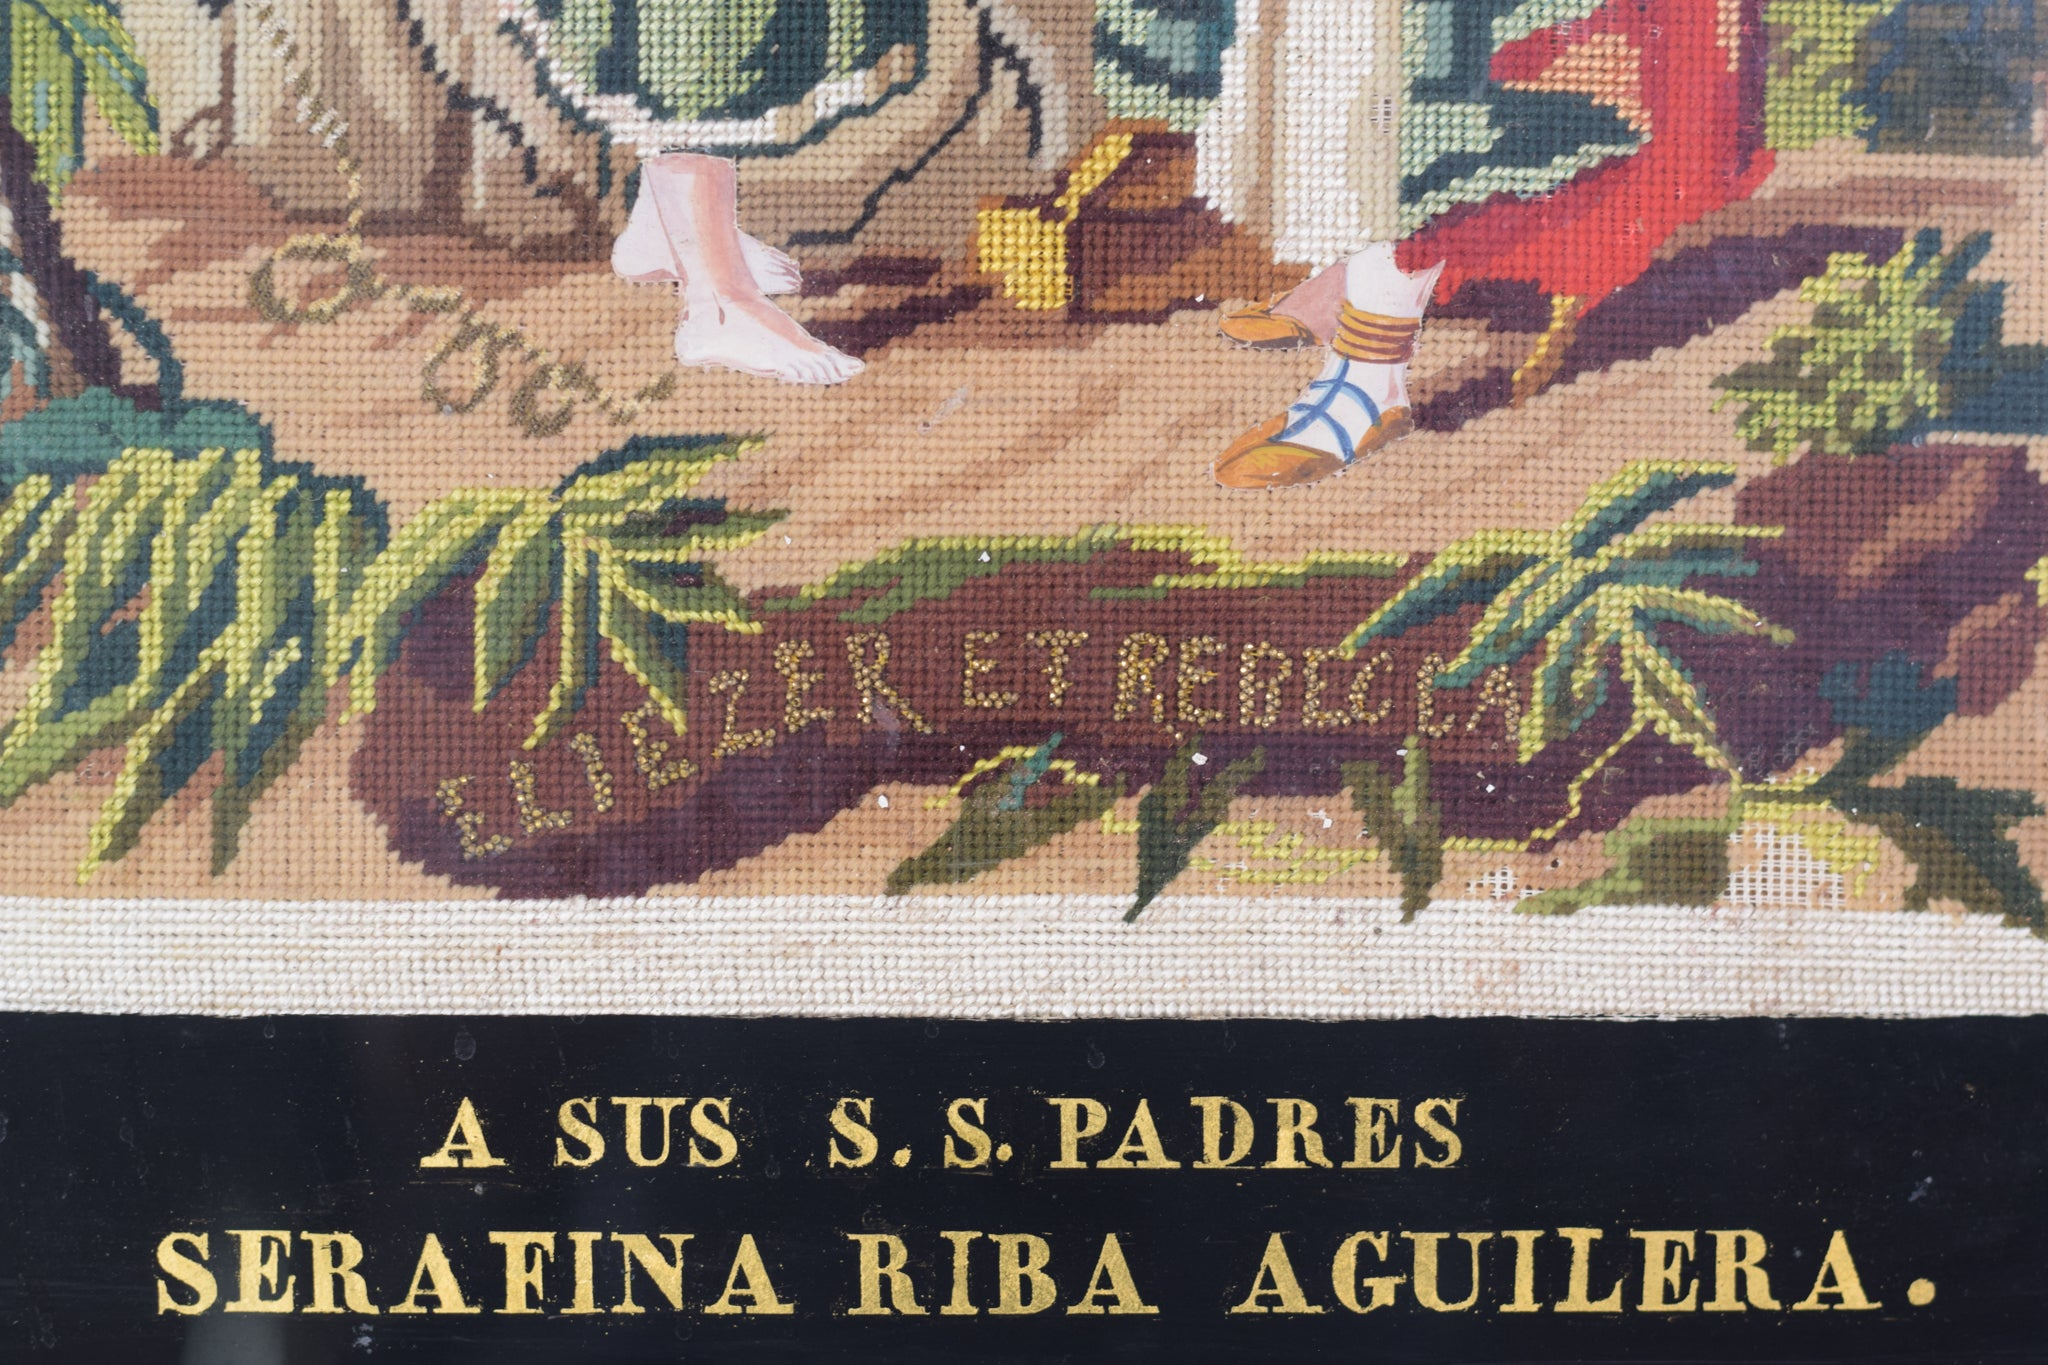 Framed embroidery 'Rebecca and Elezier at the Well'_Inscription